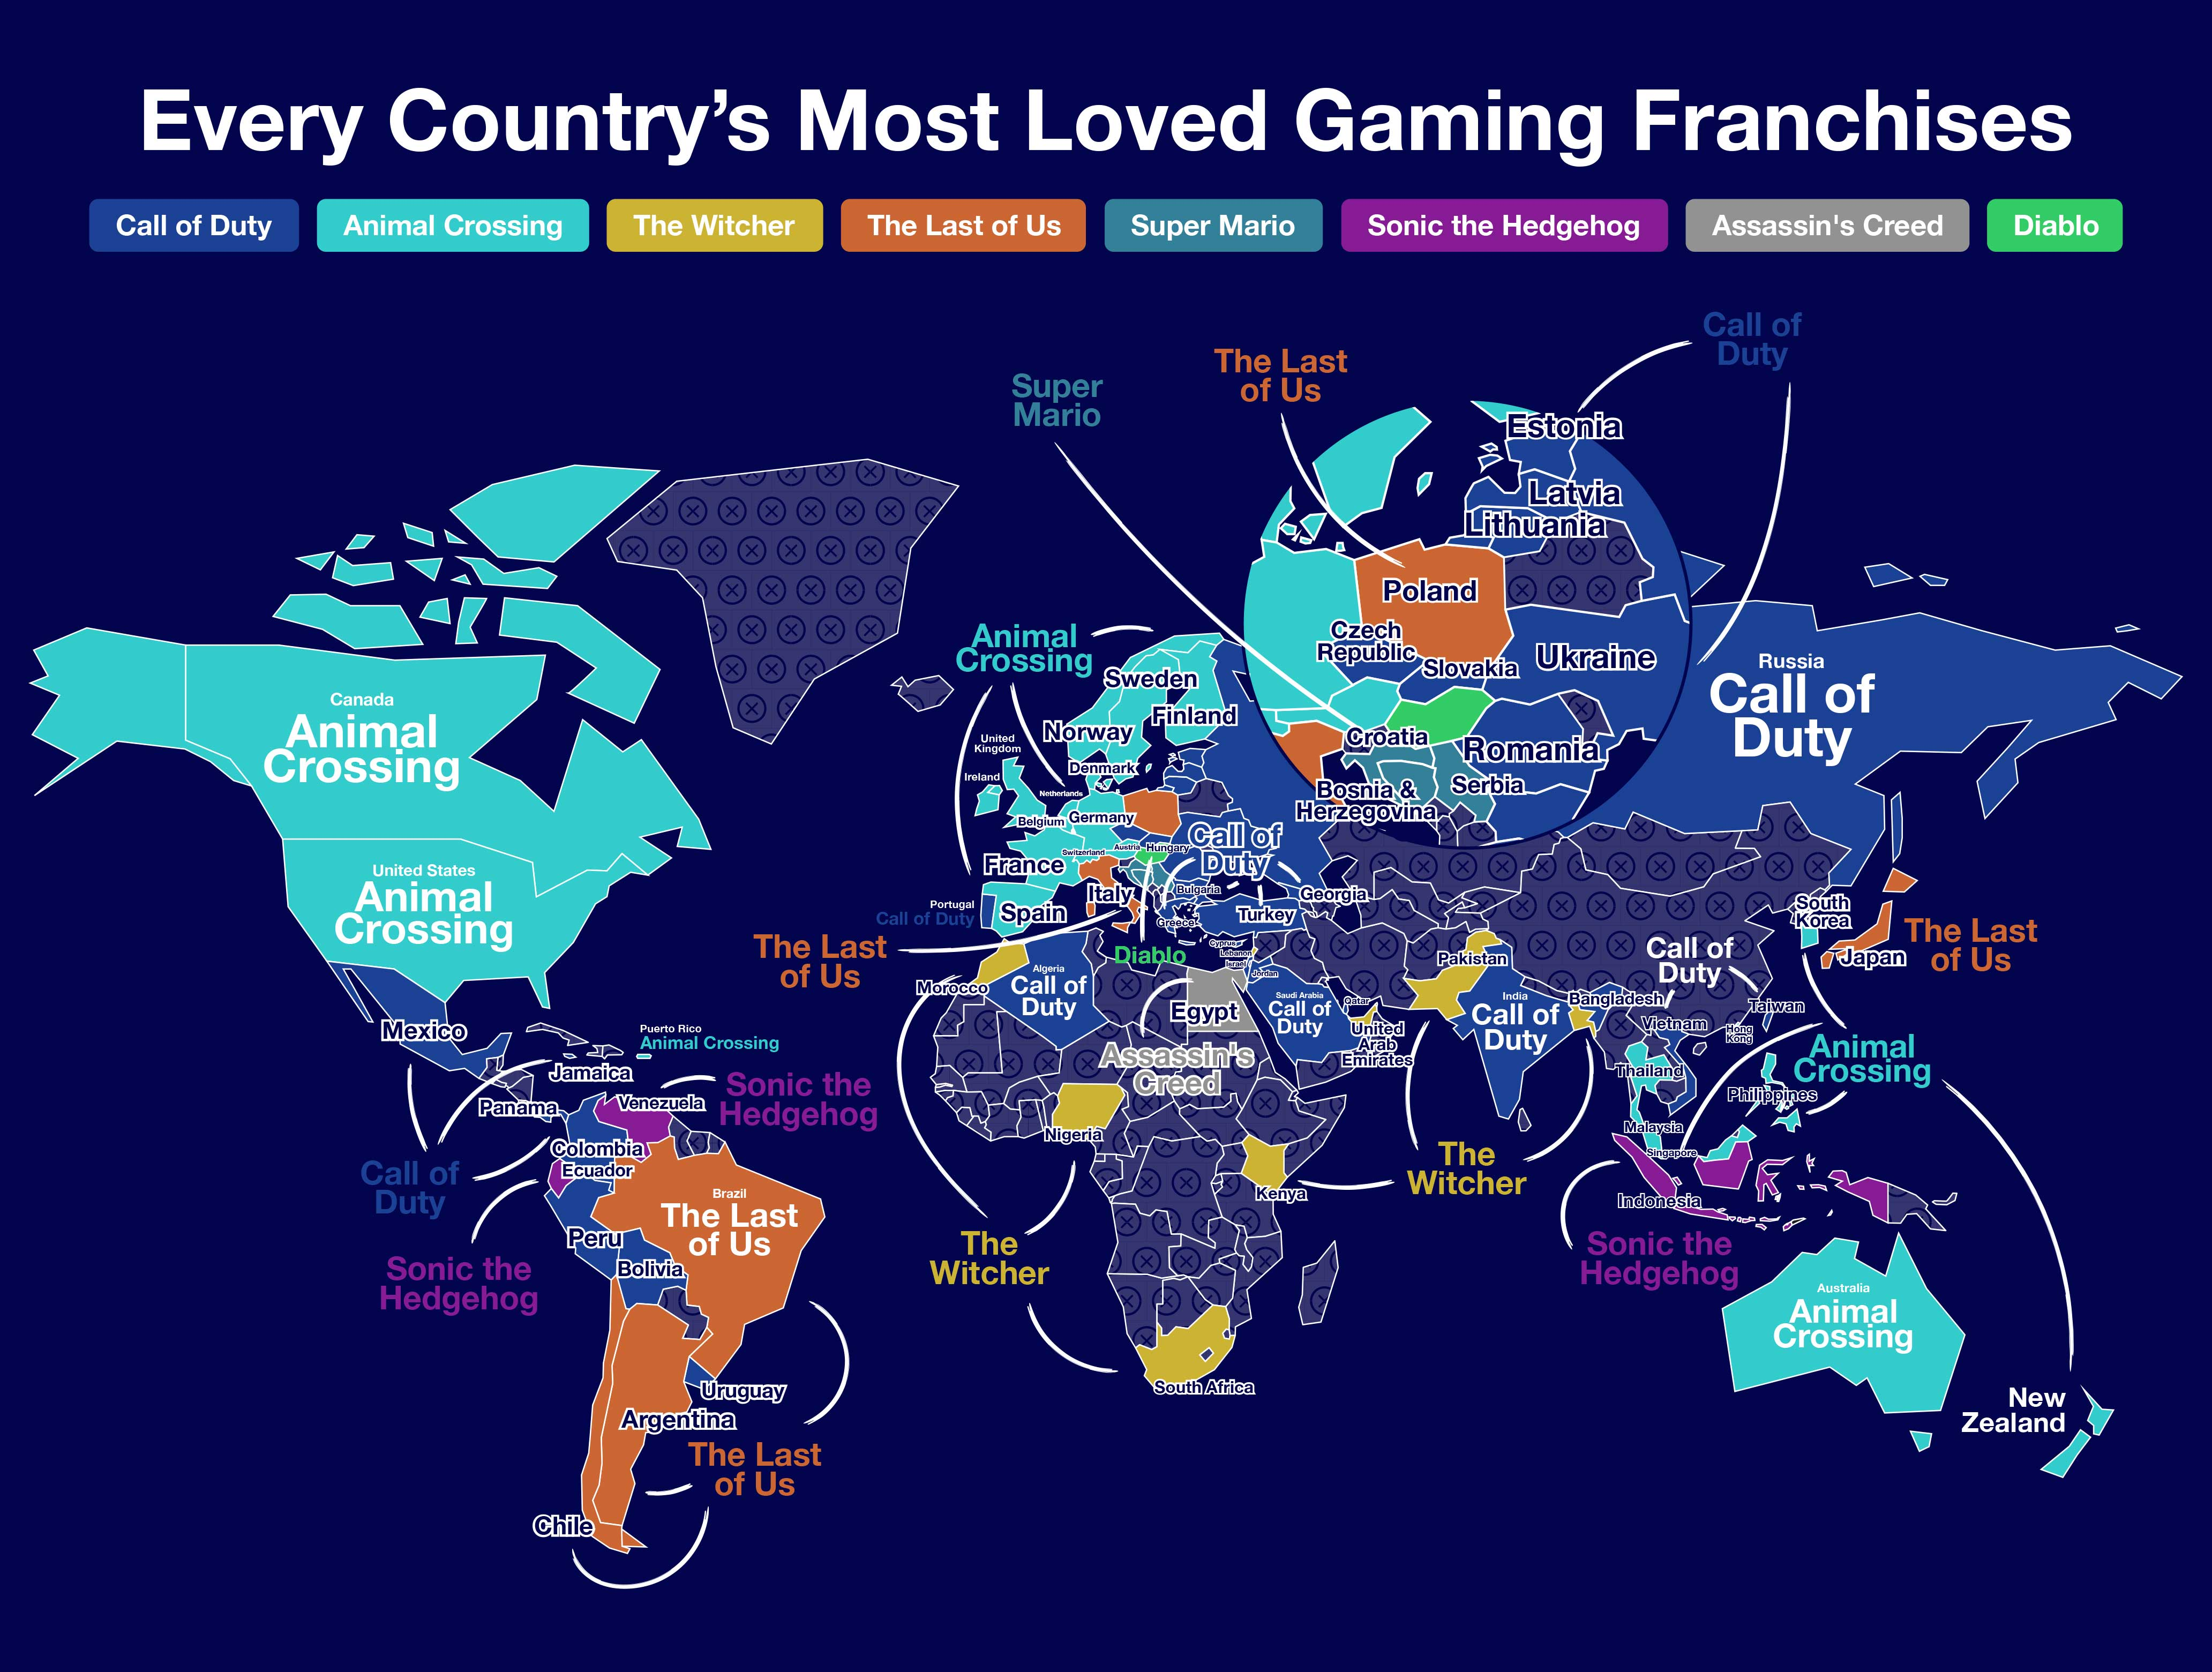 Every Country's Favorite Gaming Franchise